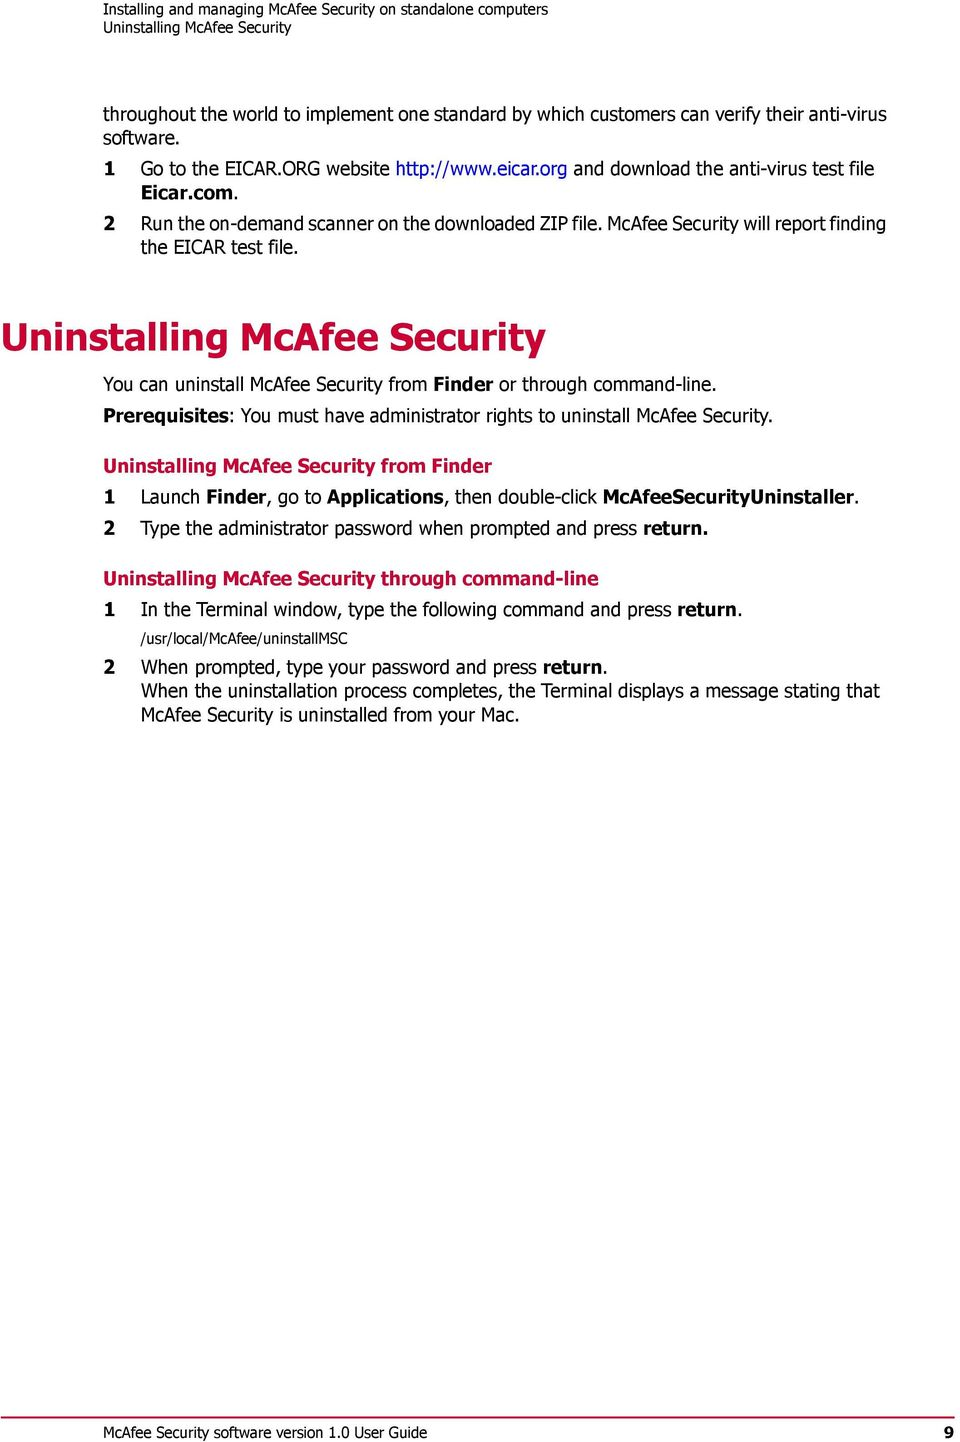 McAfee Security 1 0 User Guide - PDF